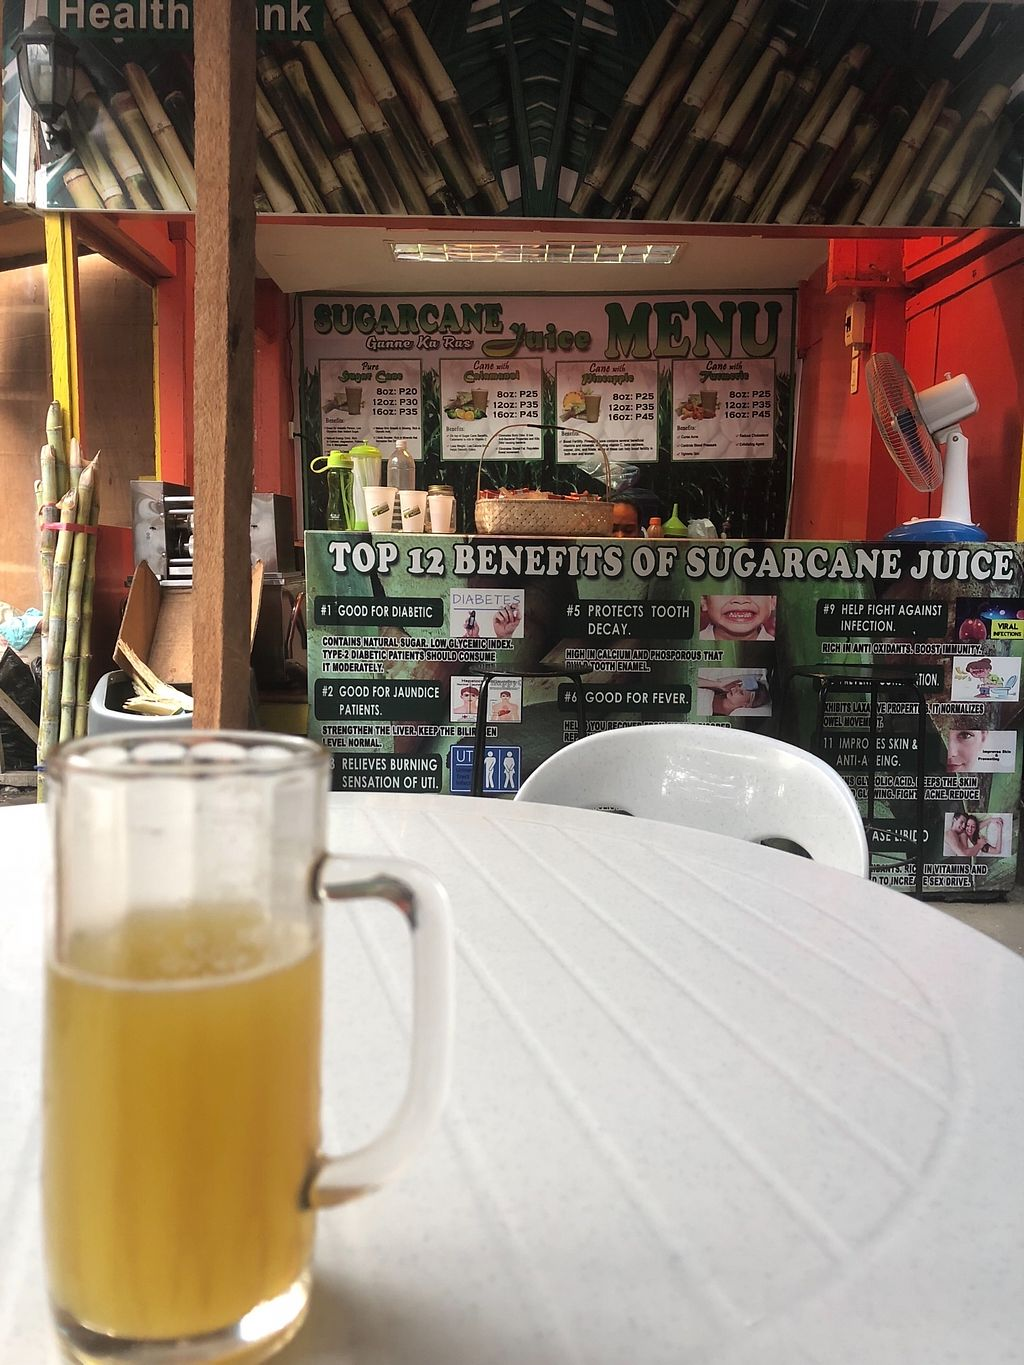 """Photo of Cane Juice Cafe  by <a href=""""/members/profile/Durianwalker"""">Durianwalker</a> <br/>Cane juice cafe hangout  <br/> February 1, 2018  - <a href='/contact/abuse/image/110833/353390'>Report</a>"""